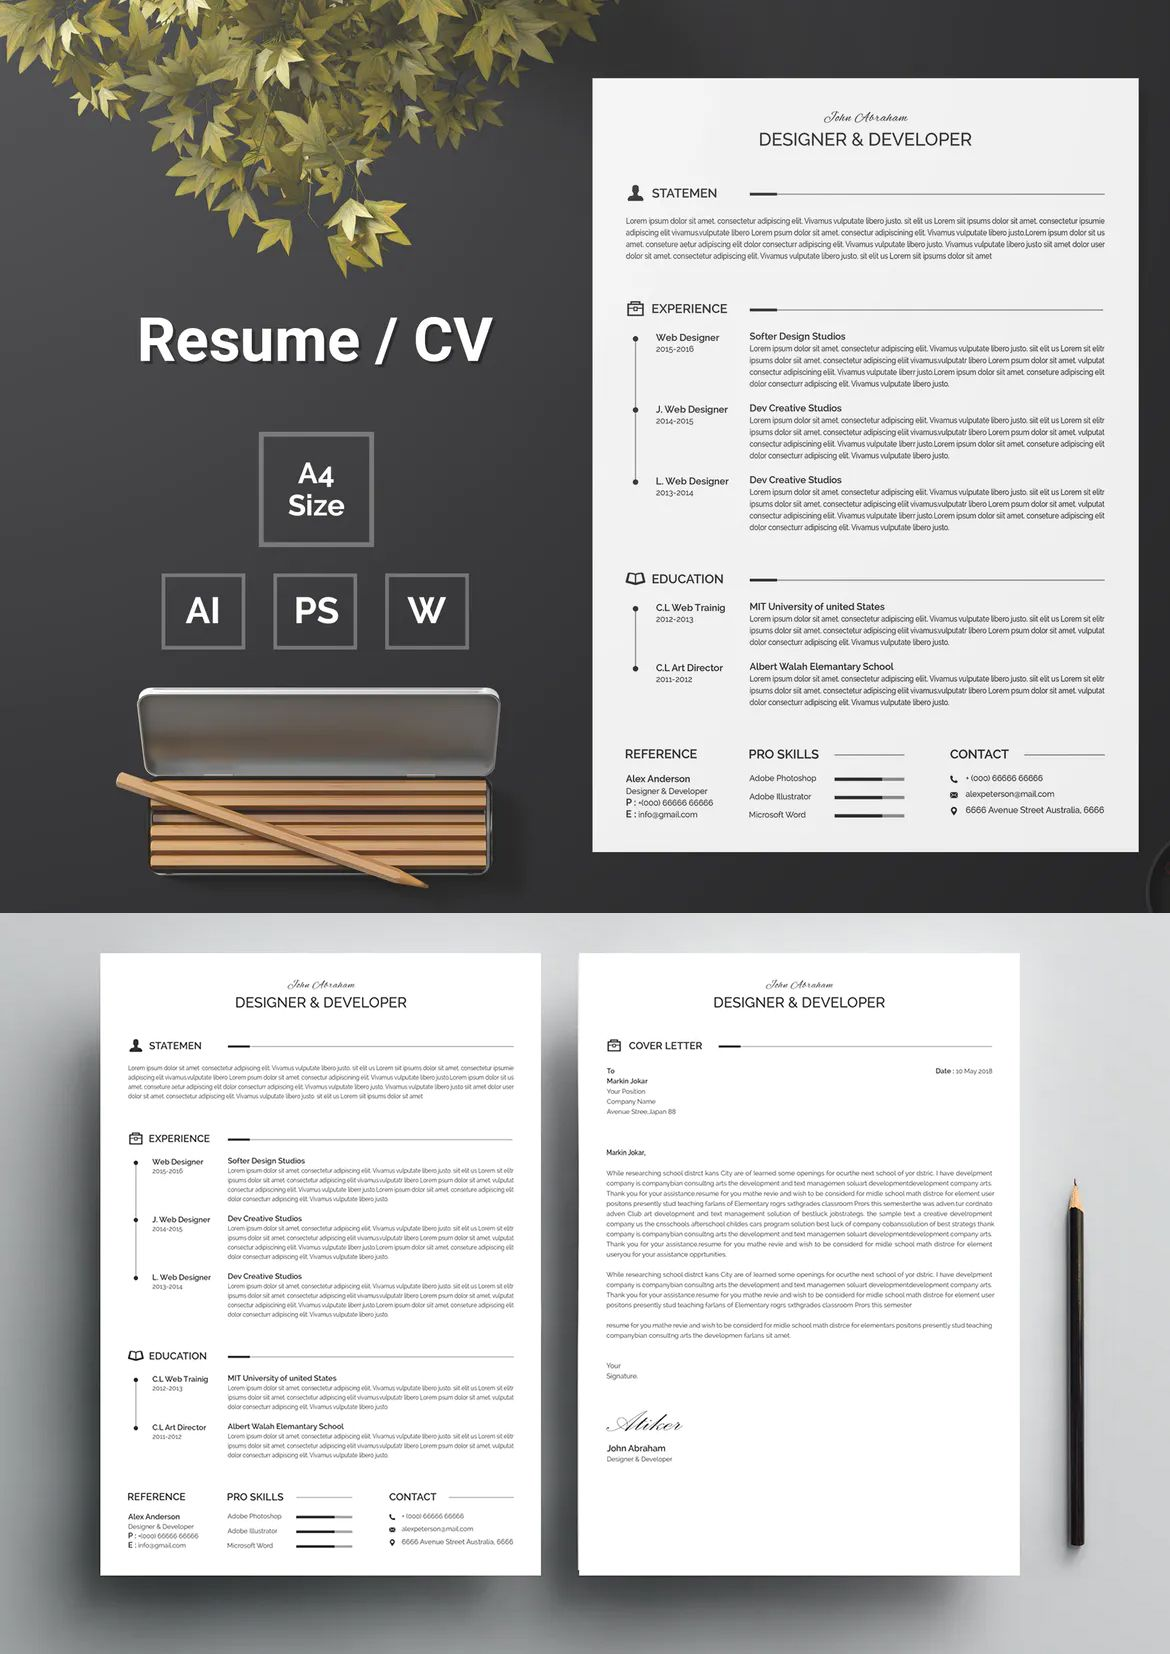 Resume Template 123 by bdthemes on (With images) Resume